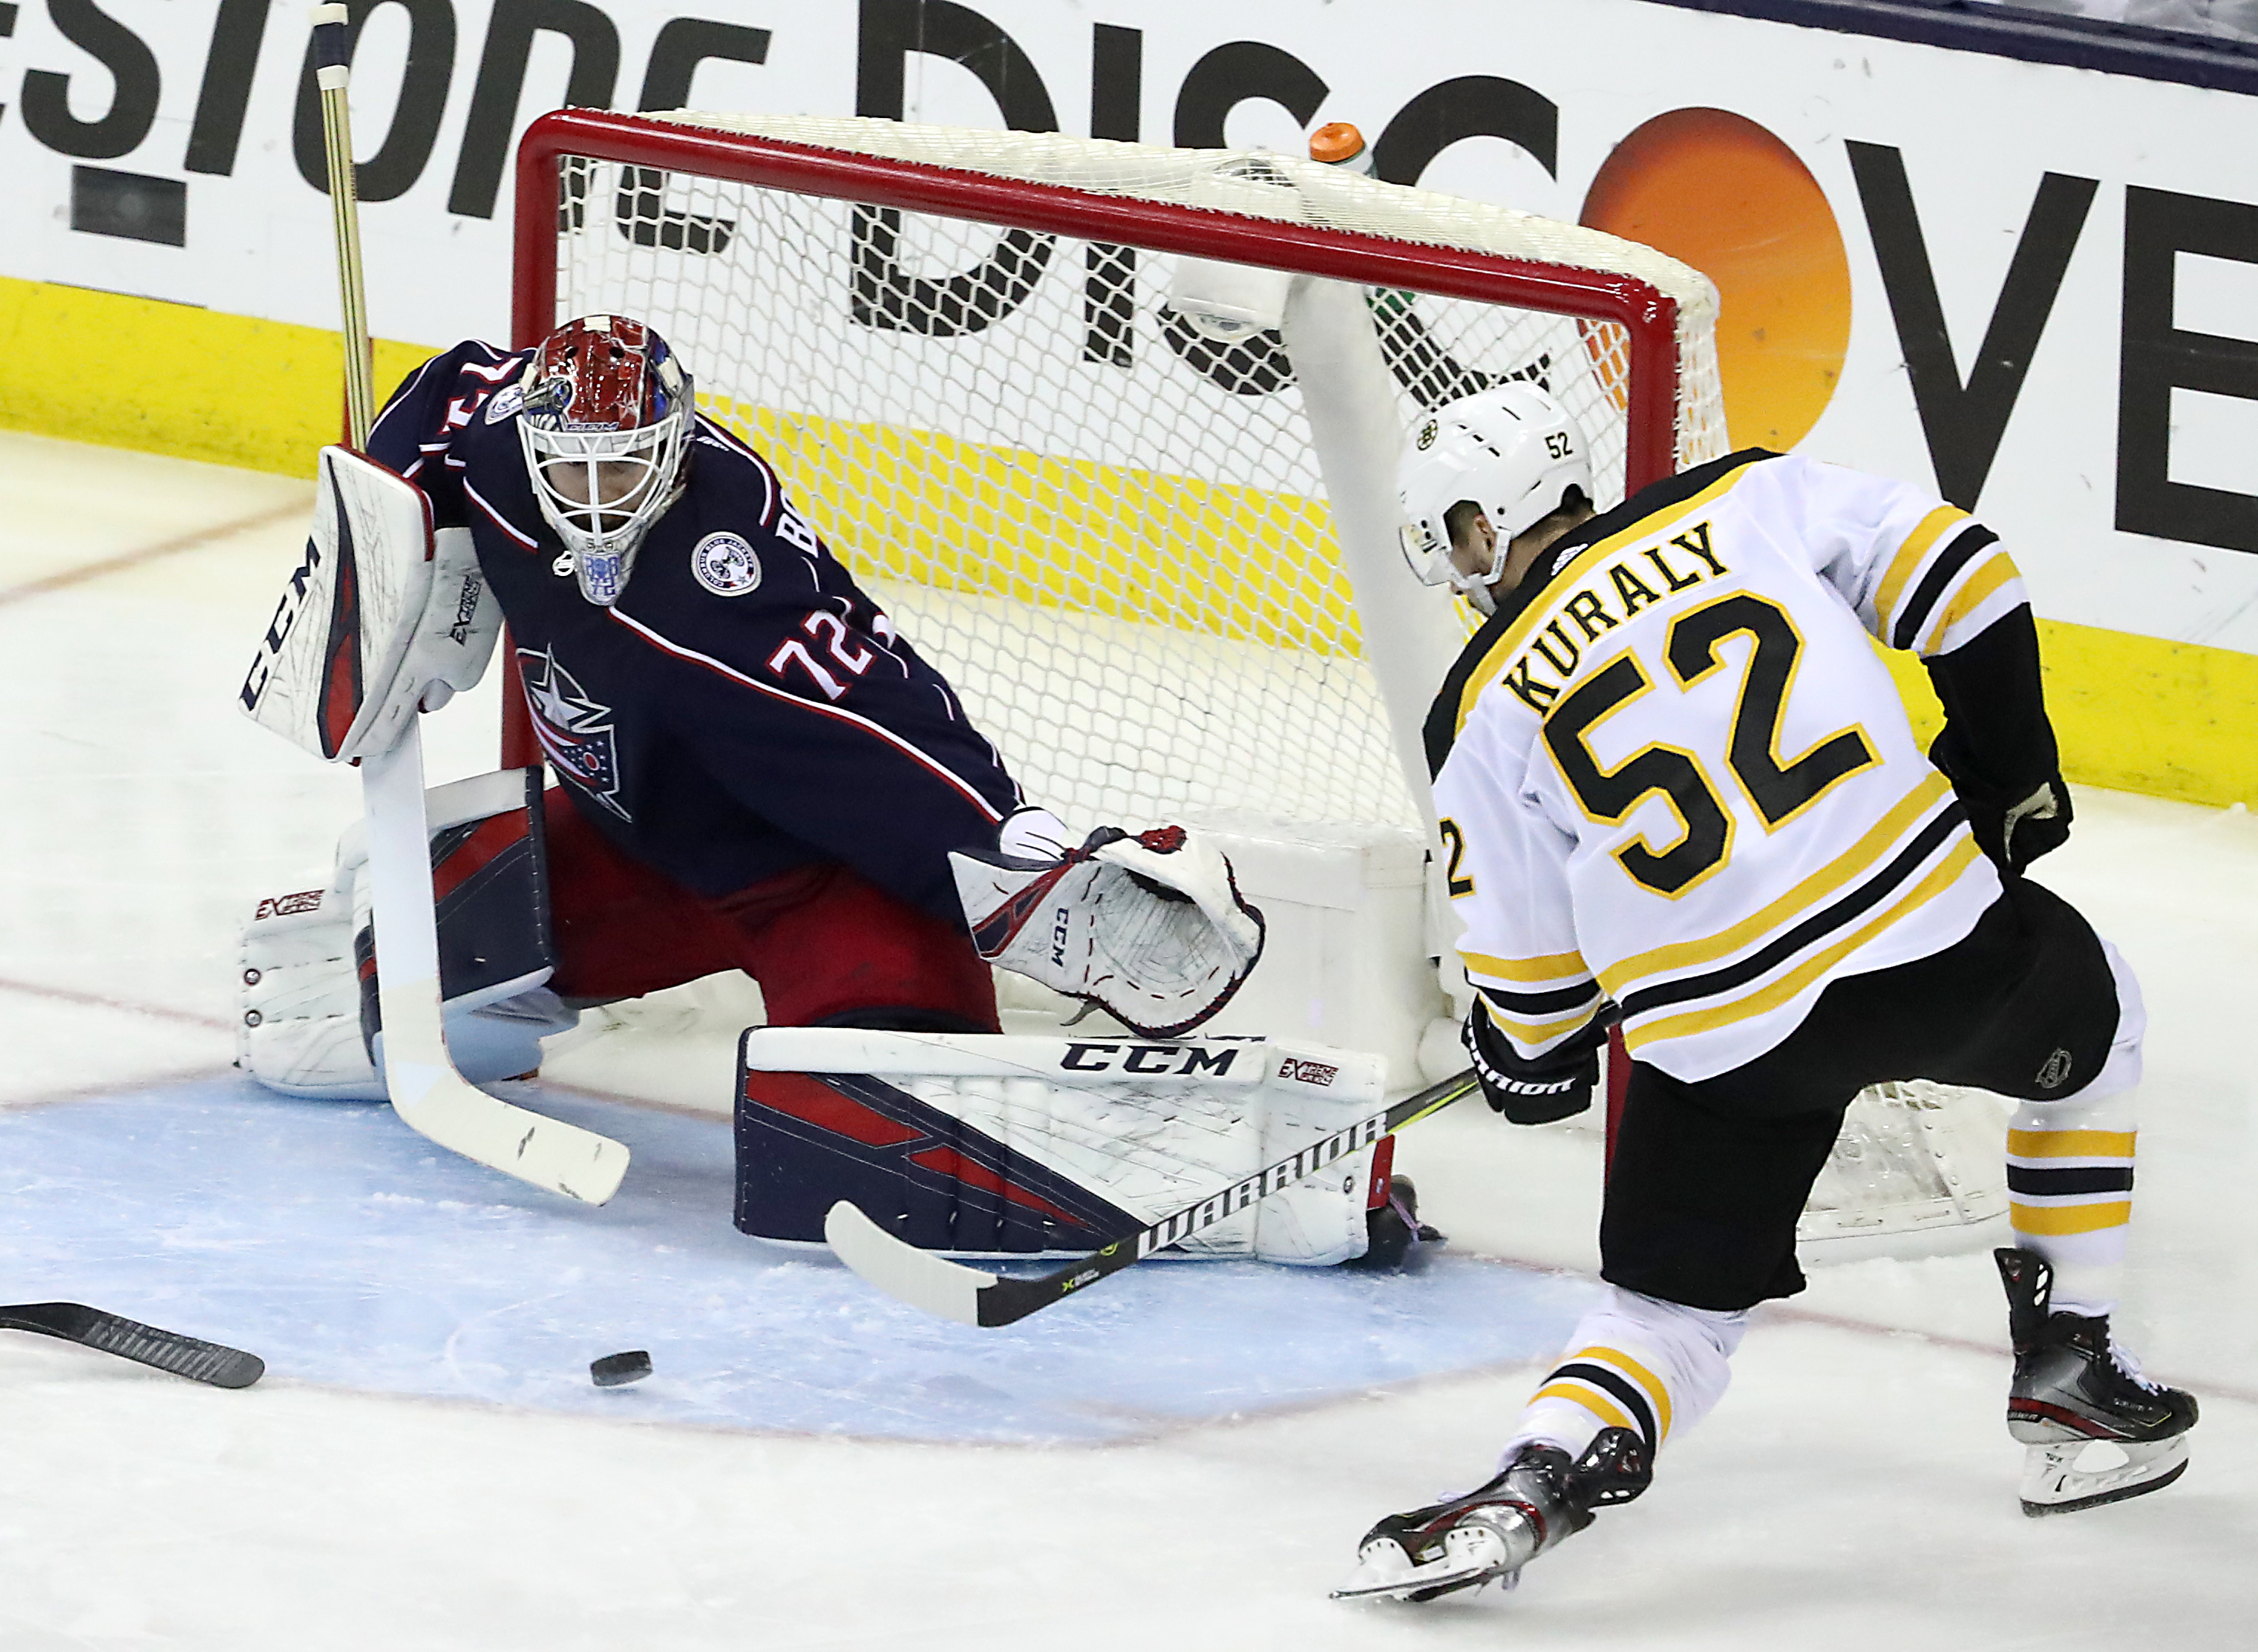 2019 Stanley Cup Playoffs: Boston Bruins Vs. Columbus Blue Jackets At Nationwide Arena